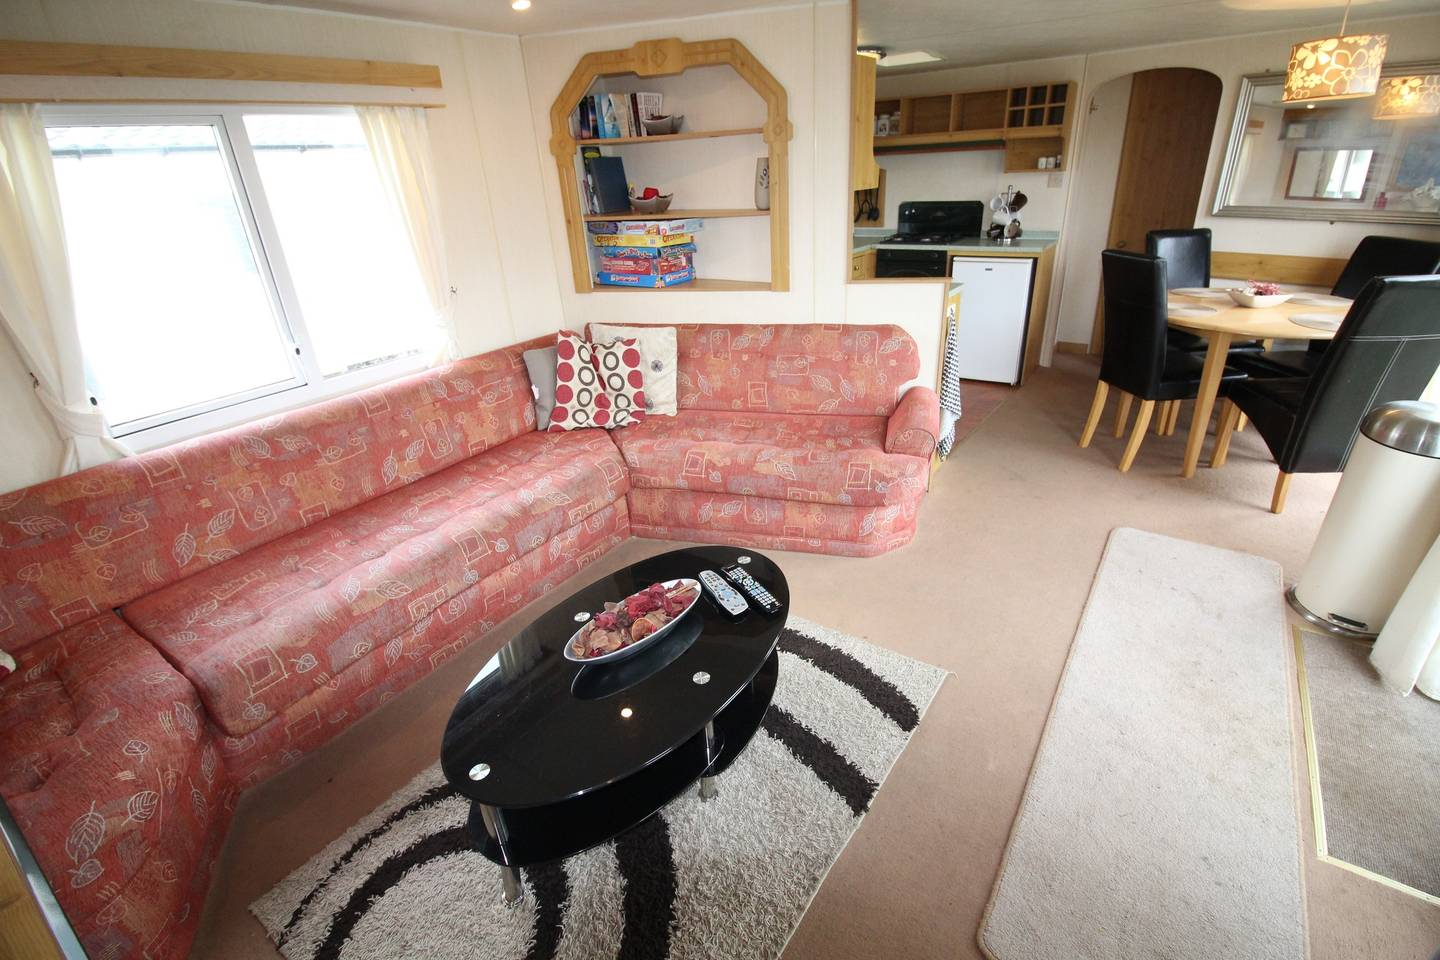 Apartment 3 Bed Caravan  Reighton Sands  Filey photo 18853158